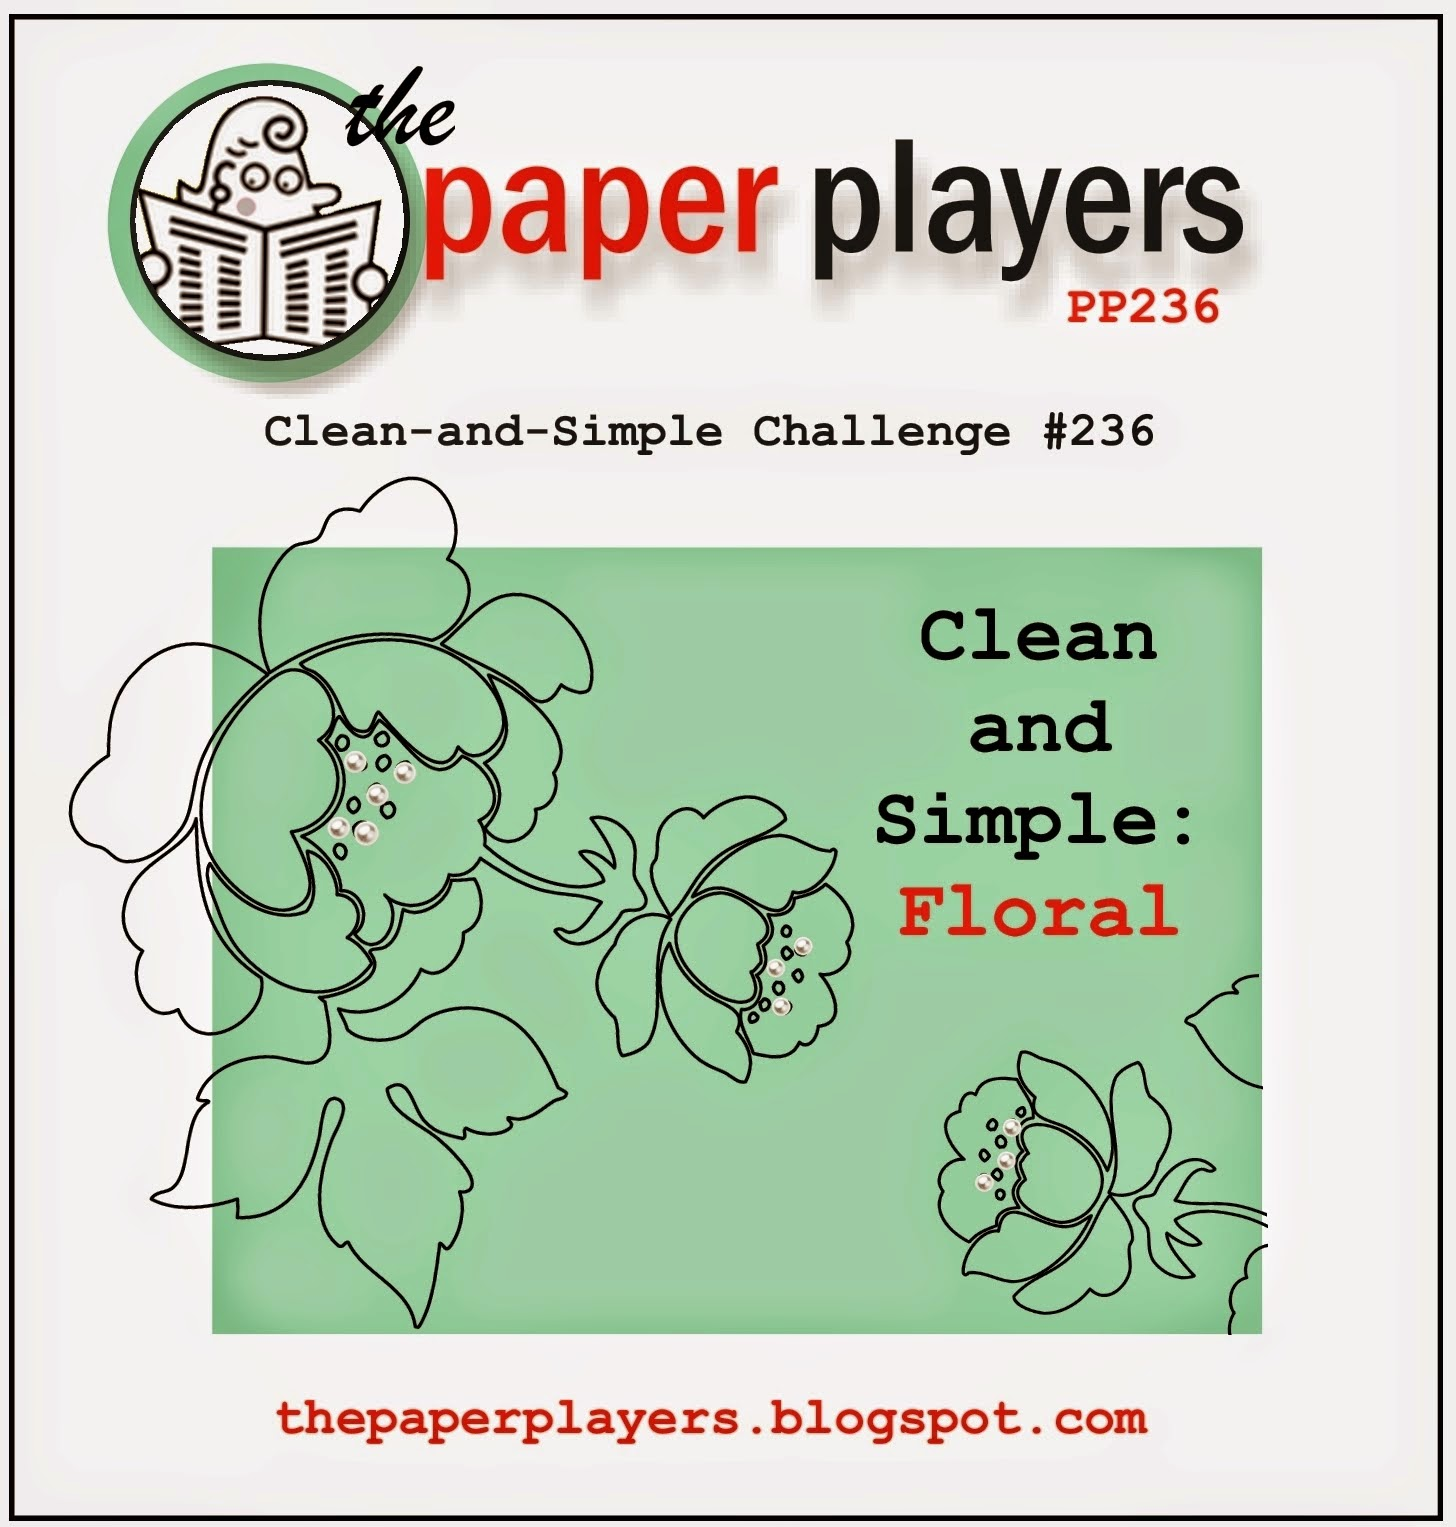 http://www.thepaperplayers.blogspot.com/2015/03/pp236-anns-clean-and-simple-floral.html